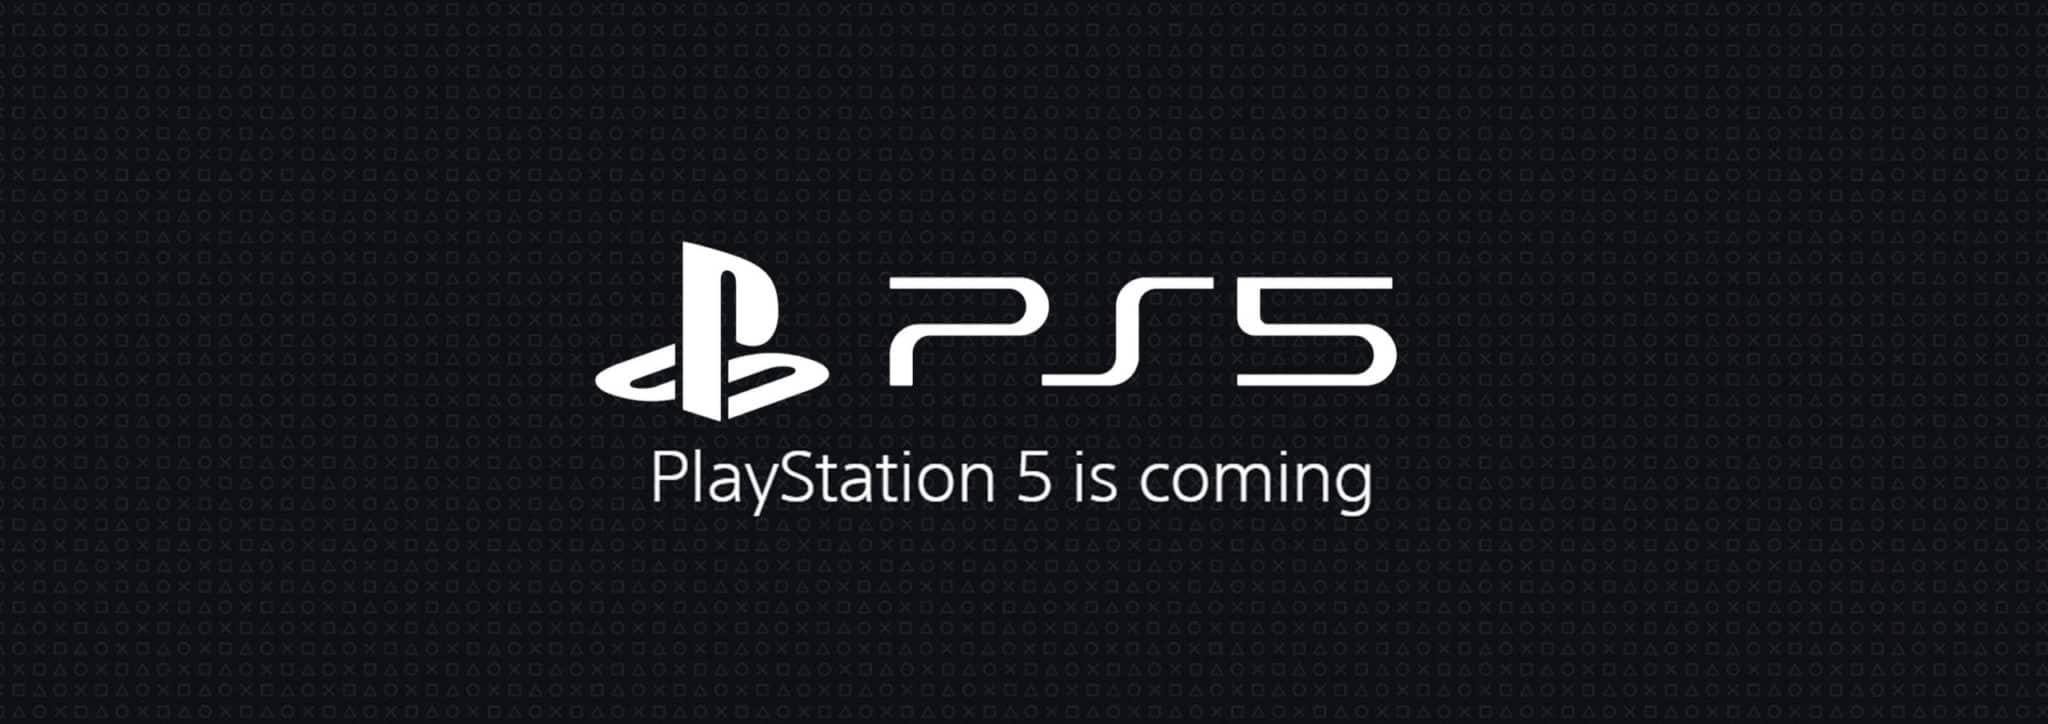 Sony PlayStation 5 (PS5) Rumors